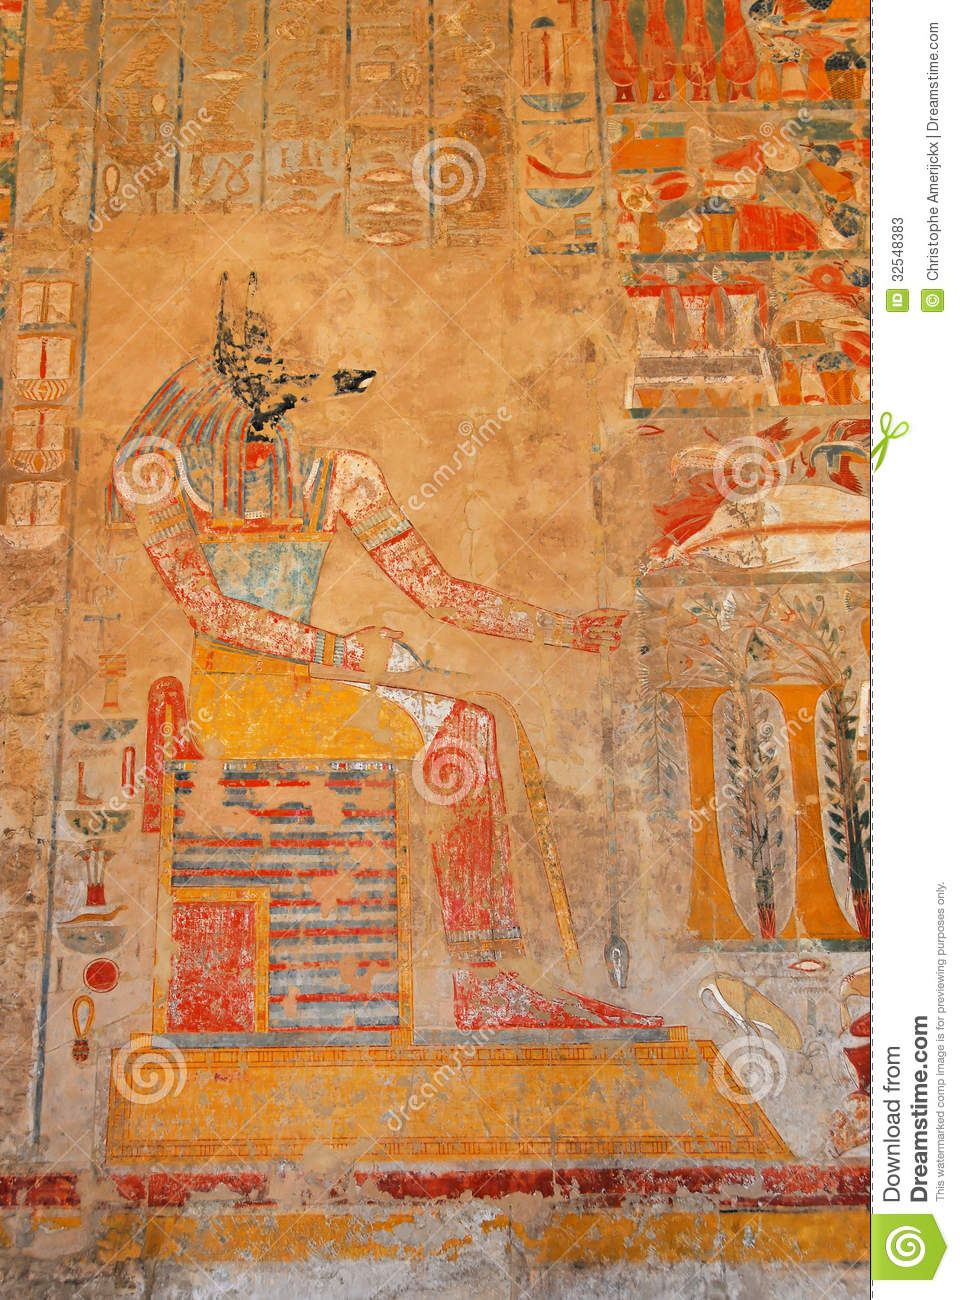 Anubis In The Hatshepsut Temple Stock Photos - Image: 32548383